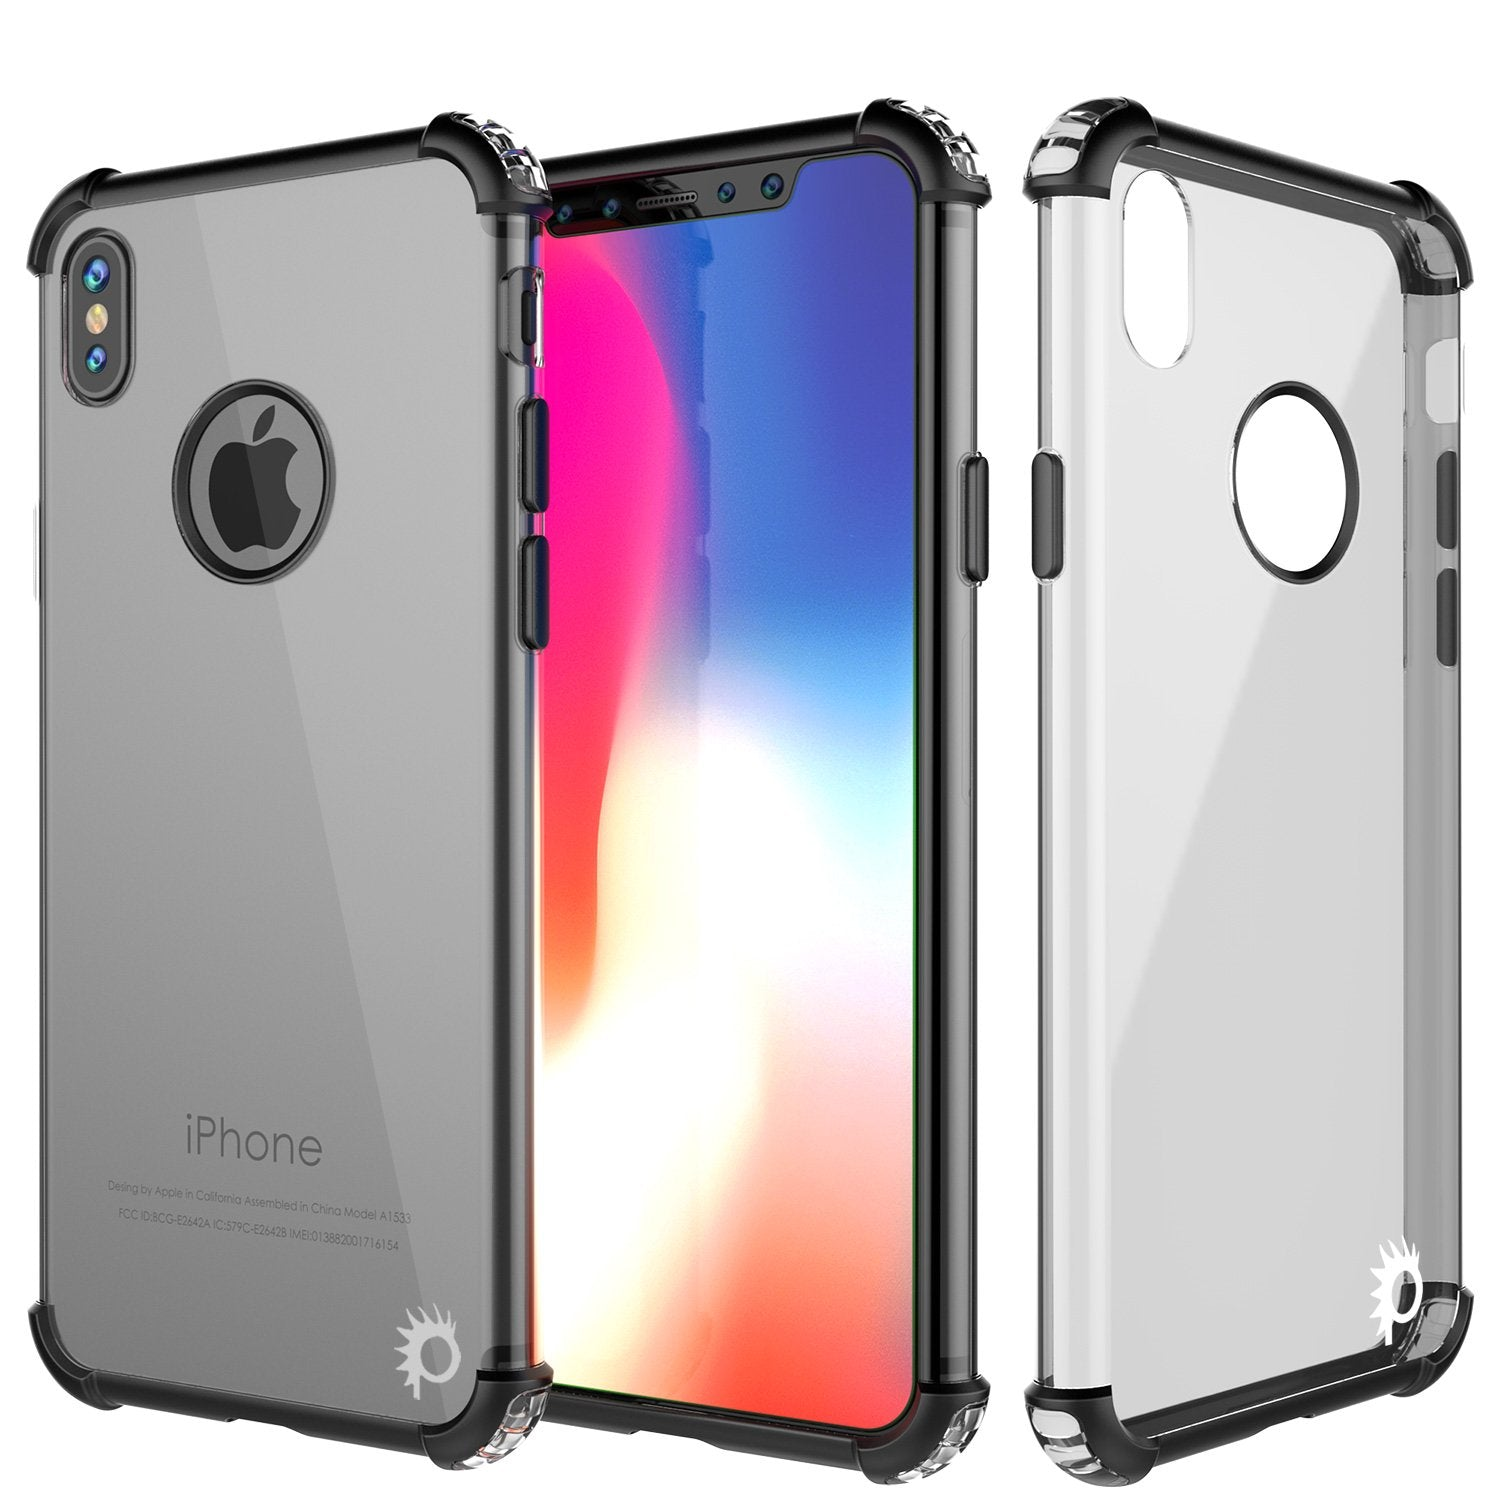 iPhone X Case, Punkcase [BLAZE SERIES] Protective Cover W/ PunkShield Screen Protector [Shockproof] [Slim Fit] for Apple iPhone 10 [Black] - PunkCase NZ